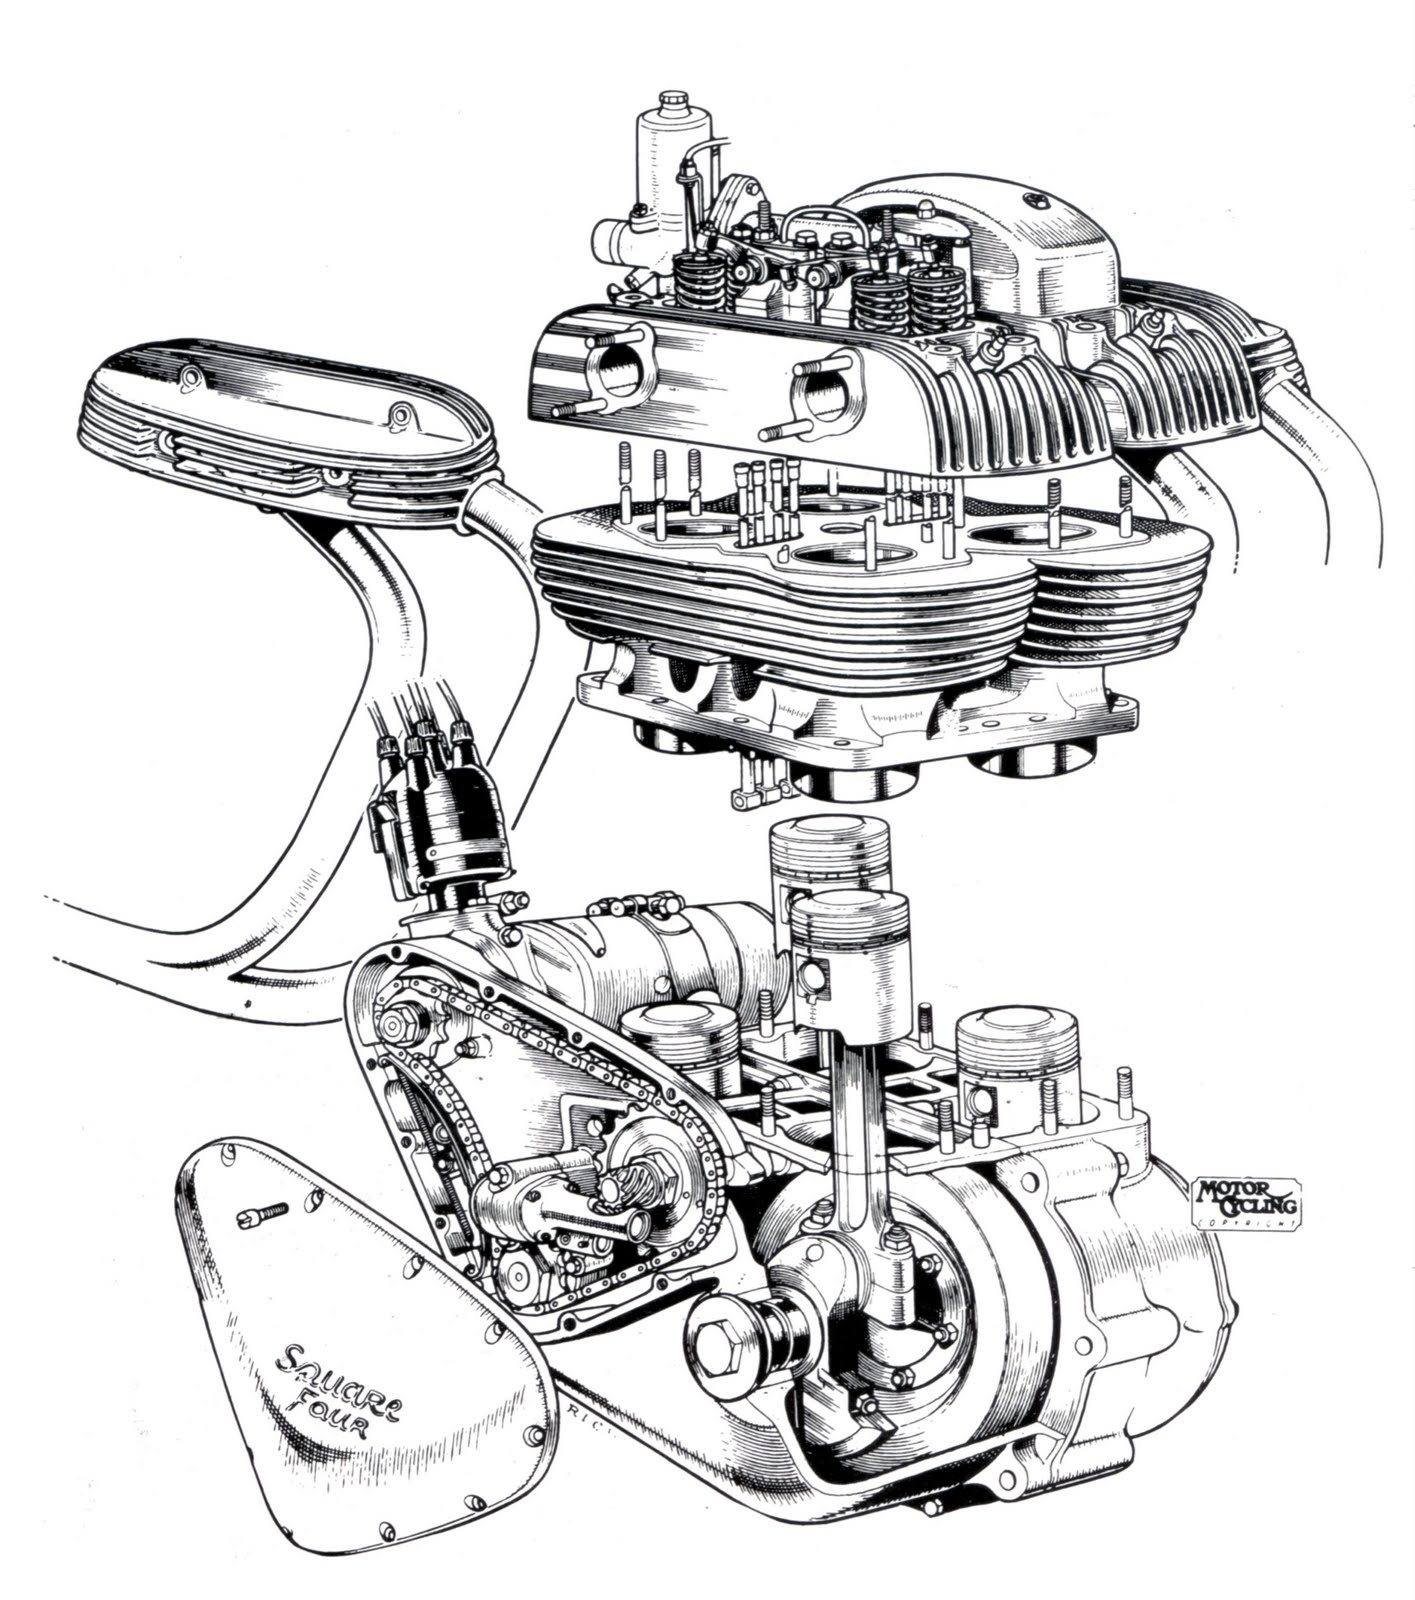 Ariel Square Four cool engine cutaway drawing ...